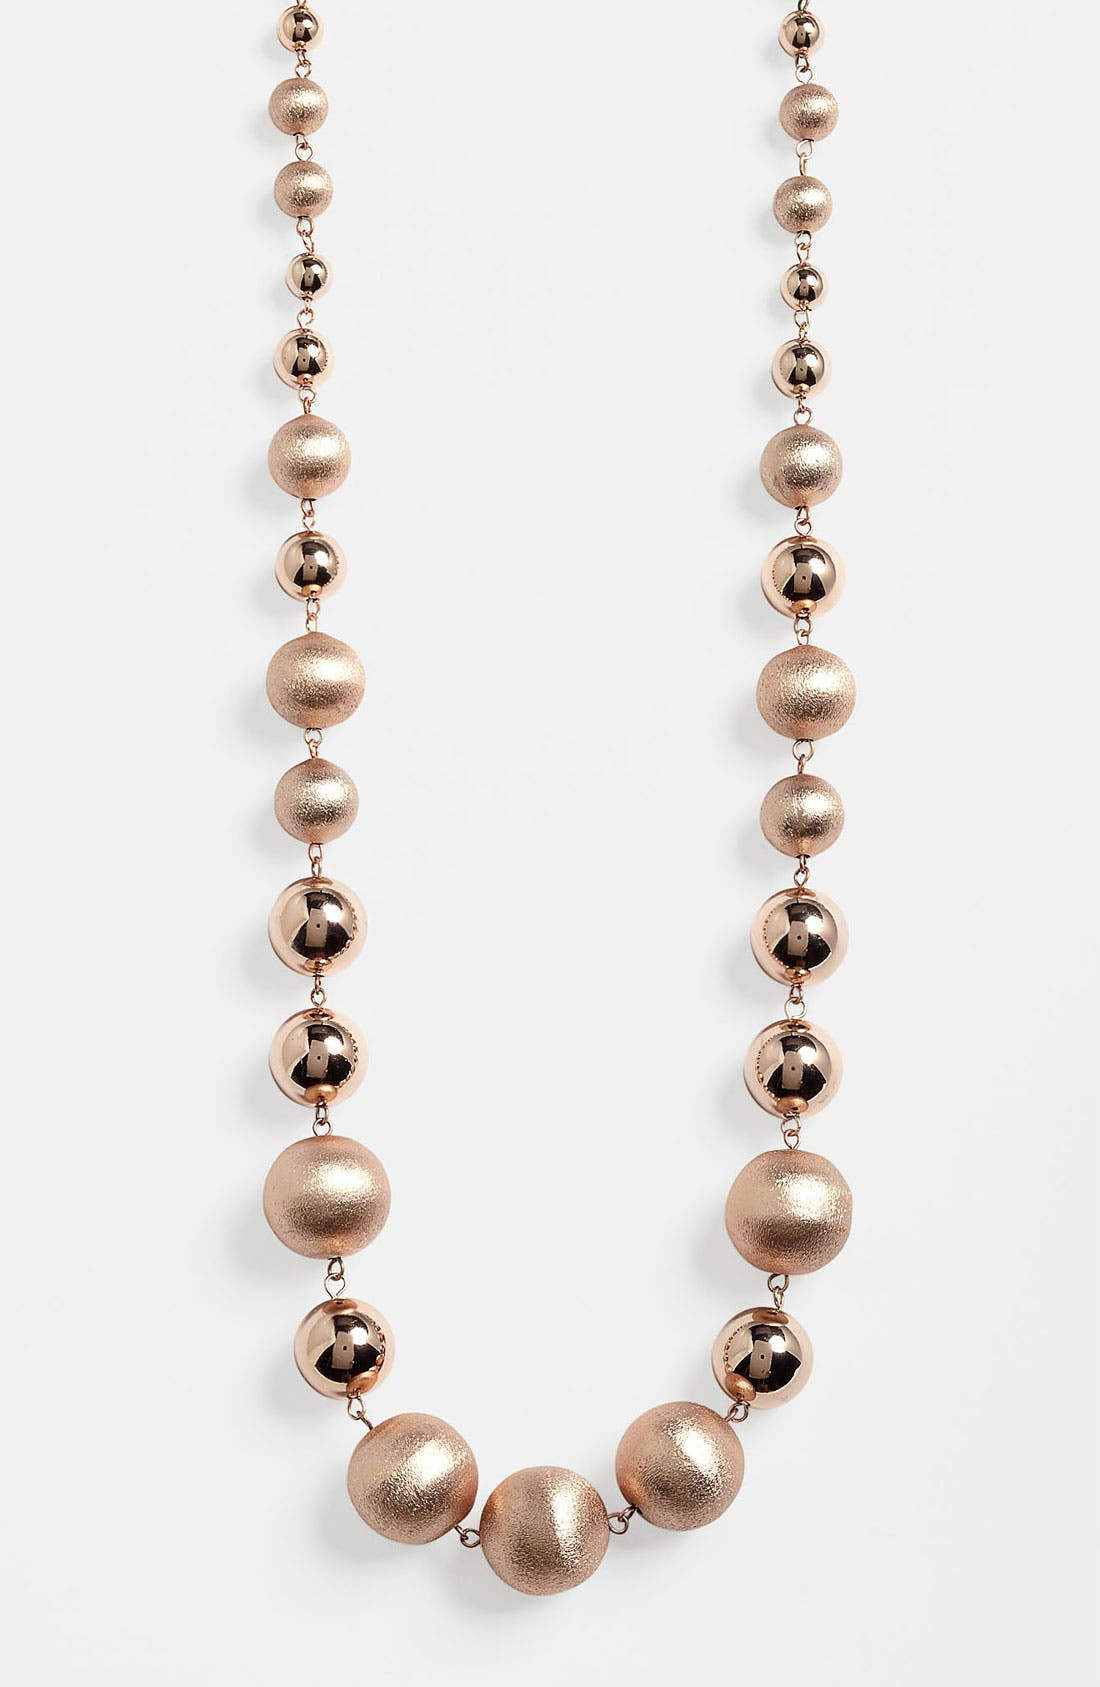 Main Image - Nordstrom 'Pebble Beach' Long Beaded Necklace